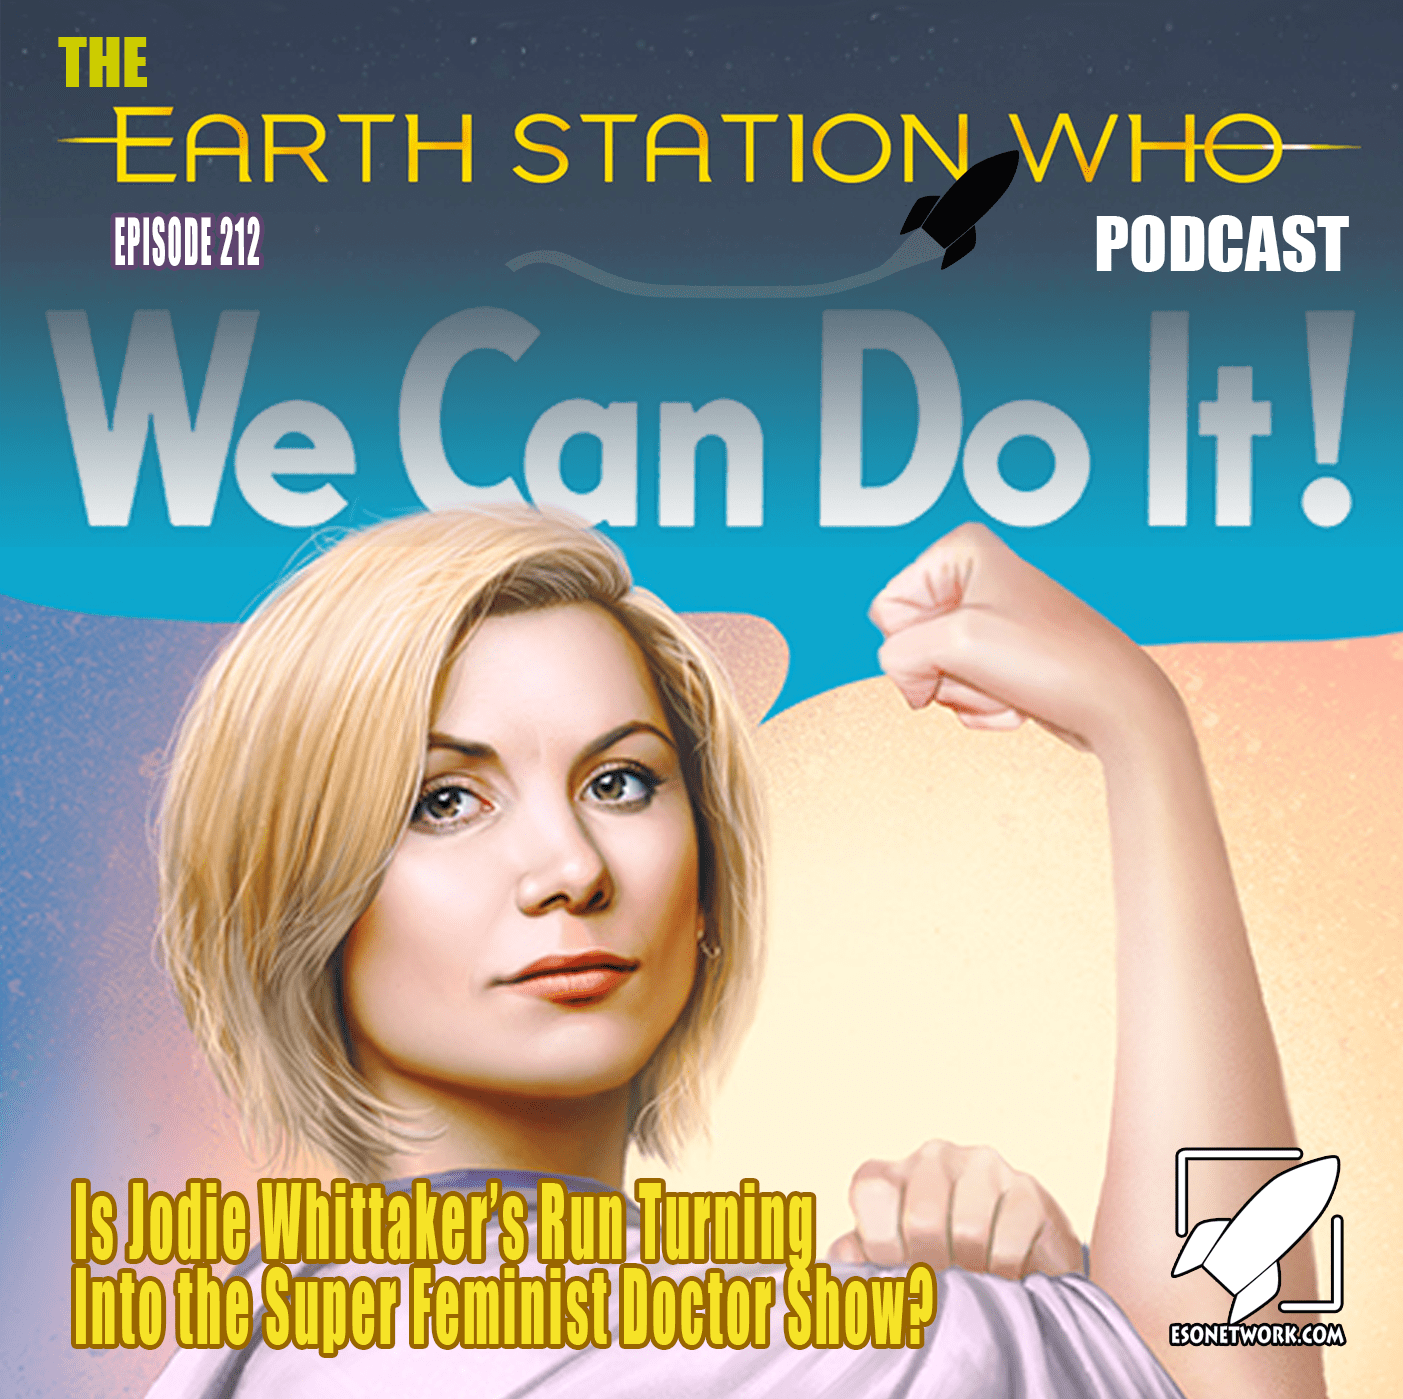 THe Earth Station Who Podcast Ep 212